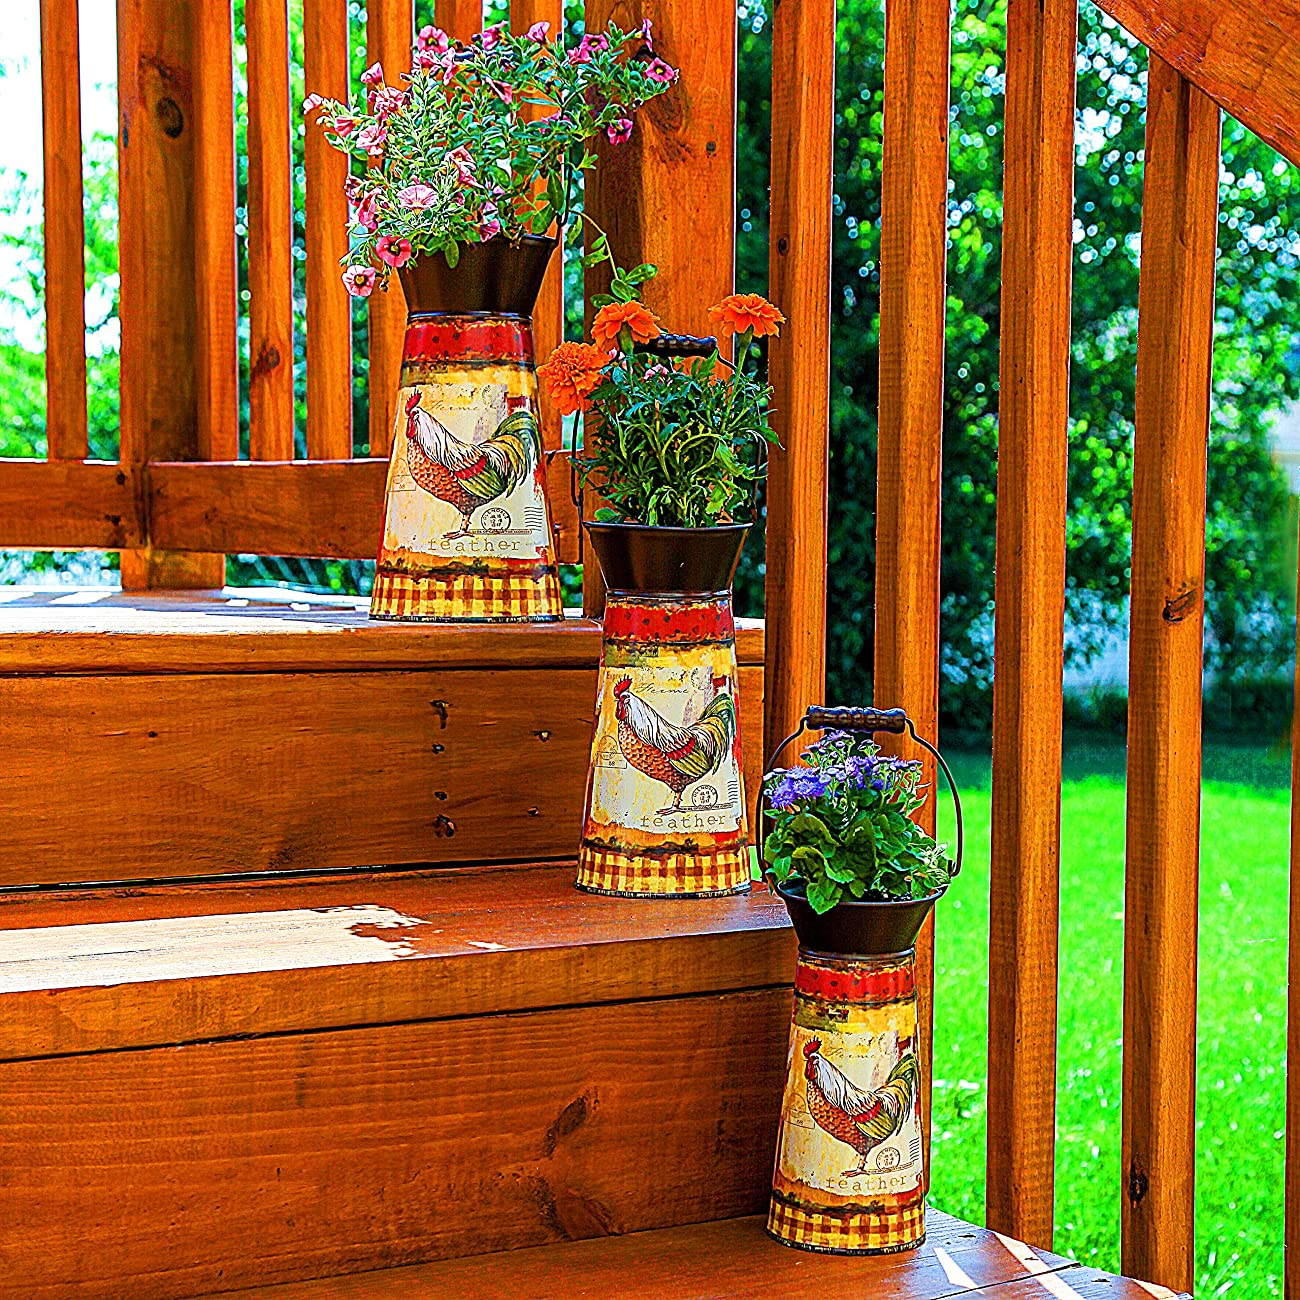 Janazala Metal Flower Pots Designed as Rustic Pitchers with Decorative Vintage Printing of Rooster on Each Flower Pot, Set of 3 4